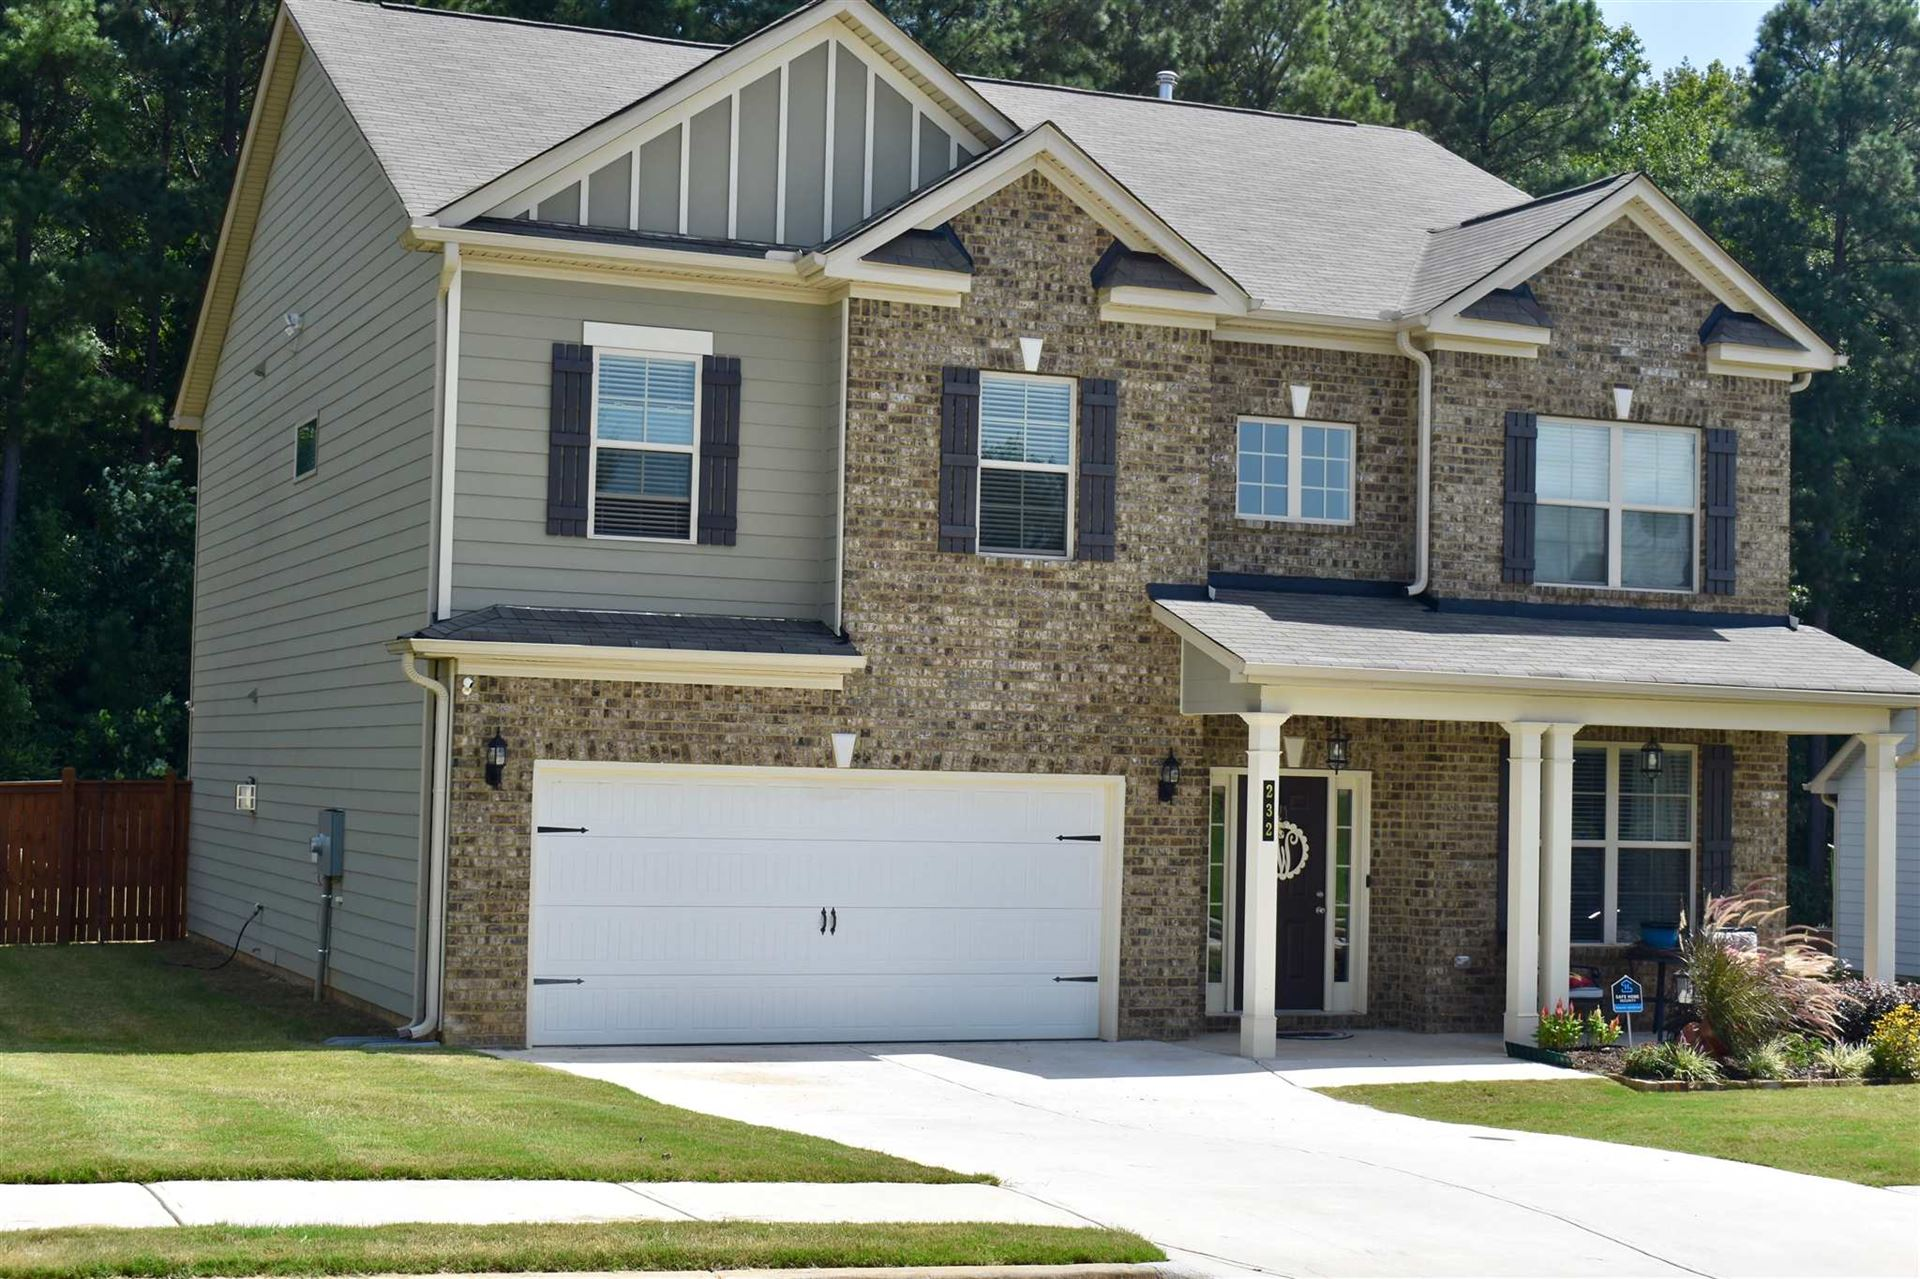 232 Madison Grace Ave, McDonough, GA 30252 - MLS#: 8851447